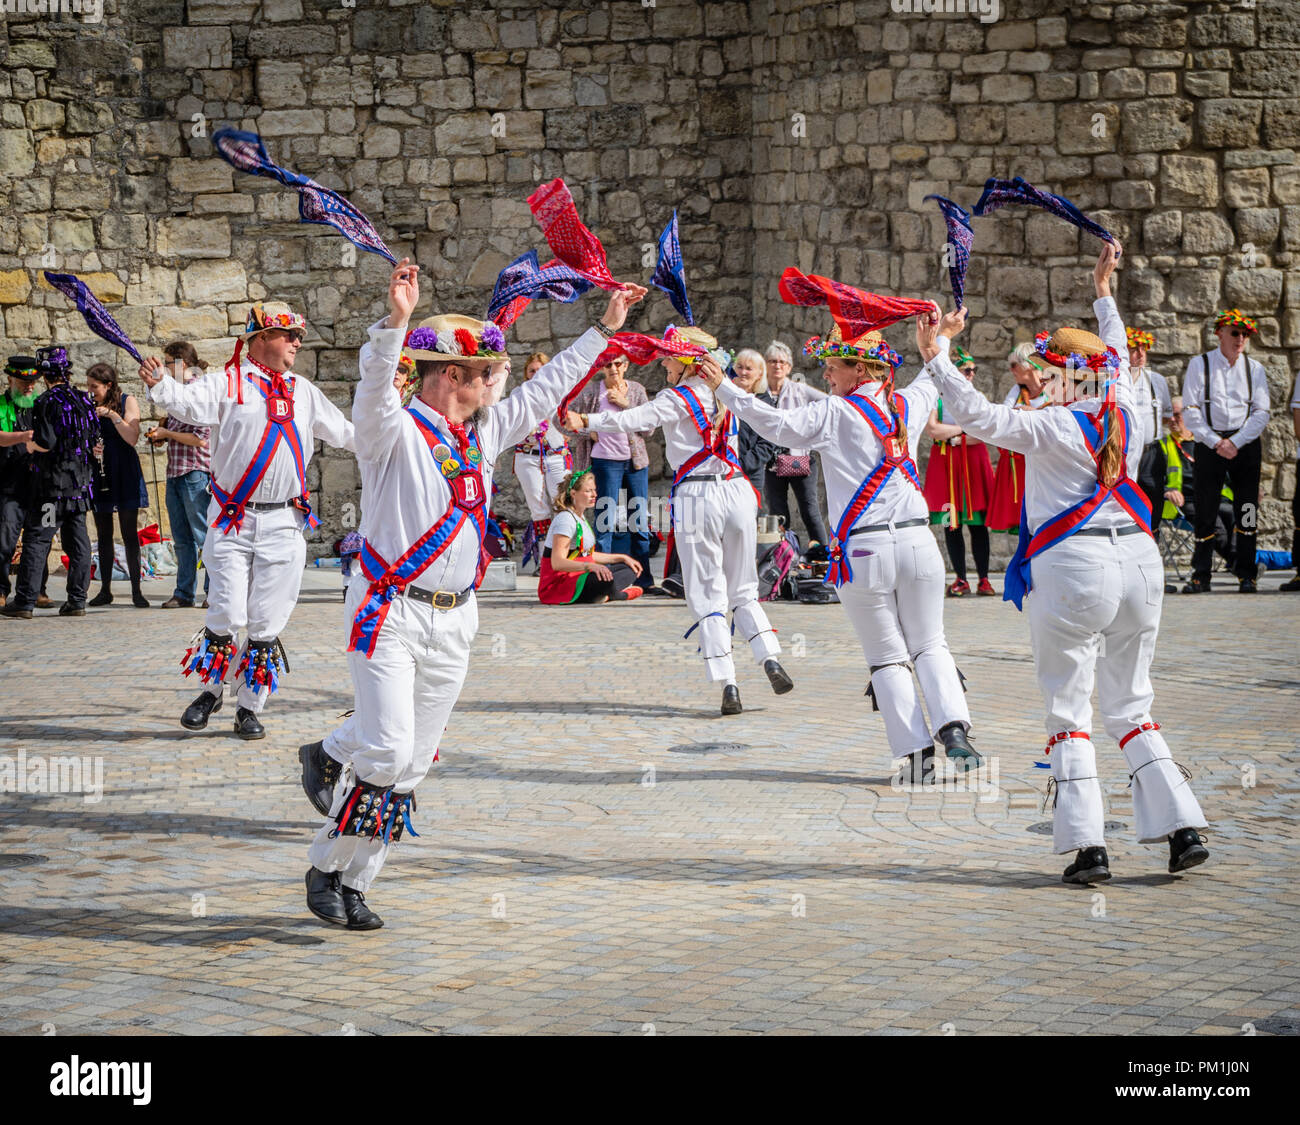 A group of female and male Morris dancers perform a Morris dance in front of the Southampton Walls, Southampton, Hampshire, England, UK - Stock Image